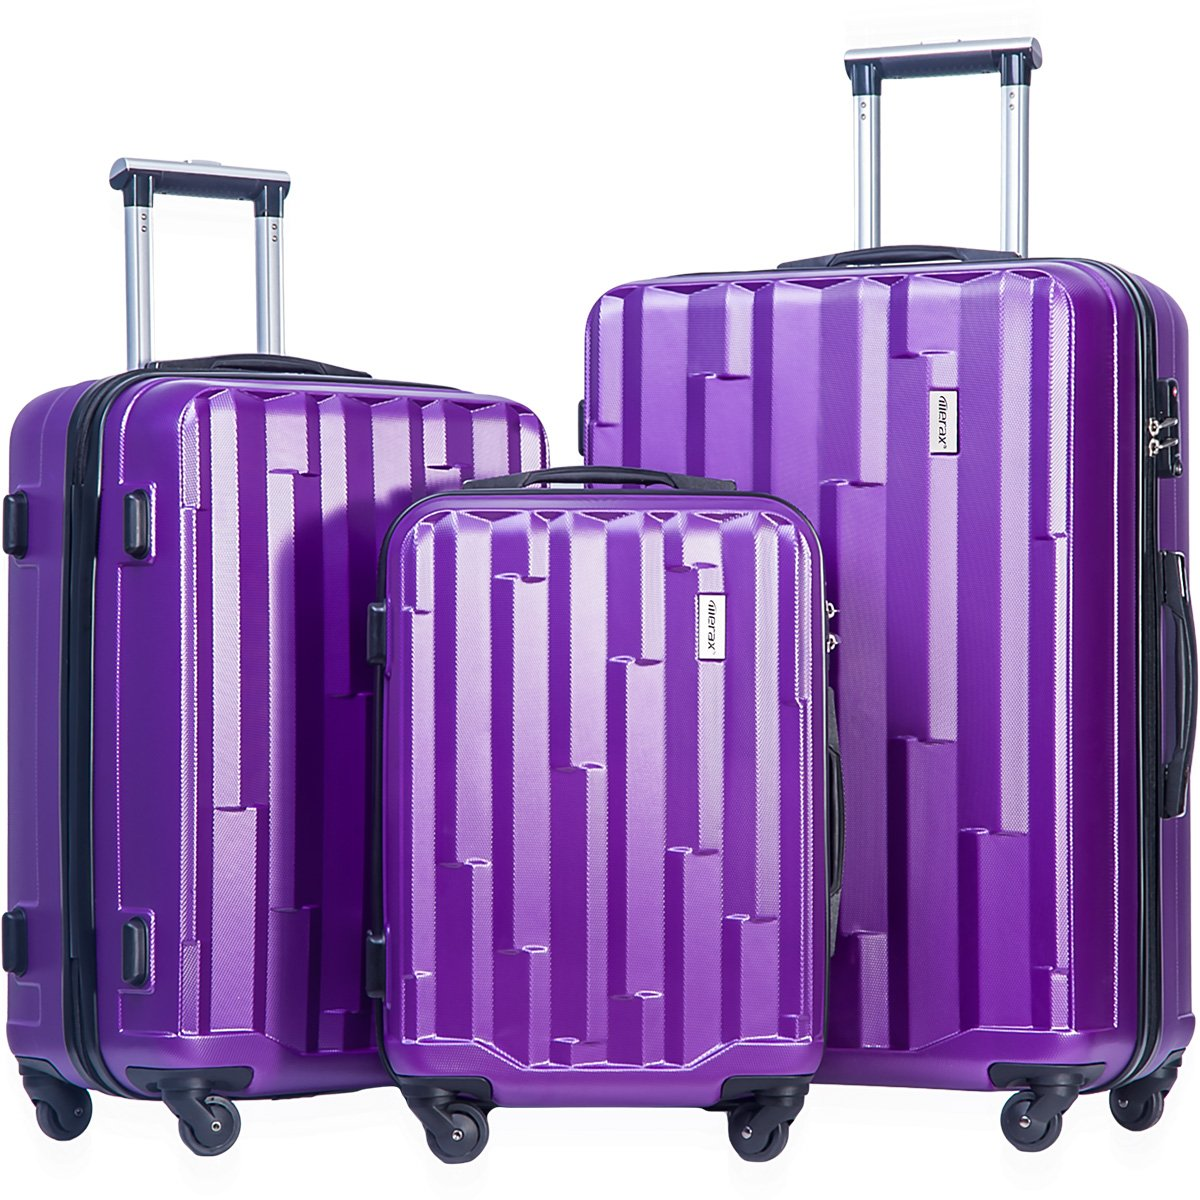 Merax Luggage set 3 piece luggages Suitcase with TSA lock (Purple)